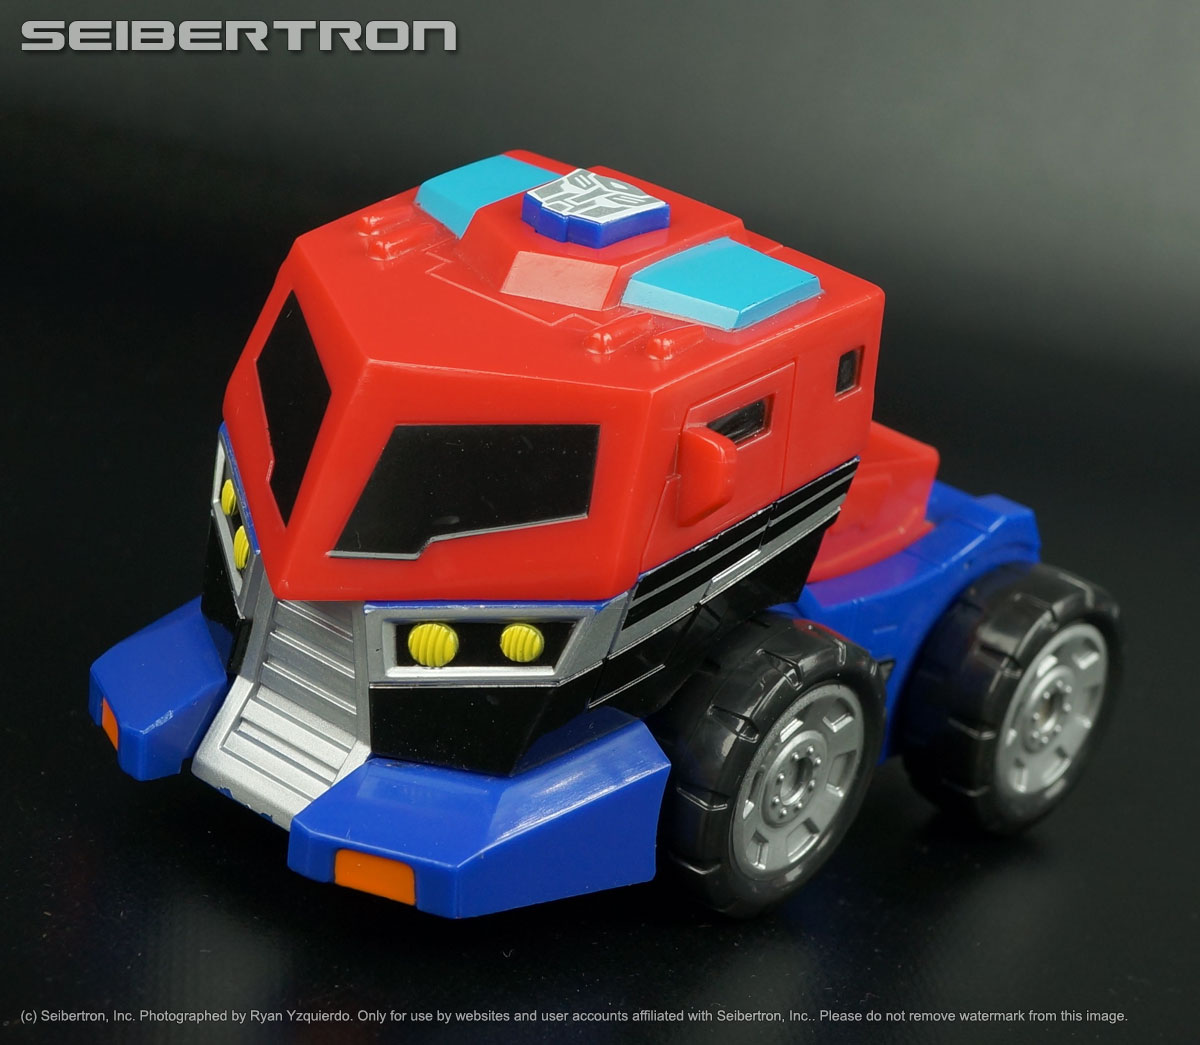 Transformers listings from Seibertron.com: OPTIMUS PRIME Transformers Animated Bumper Battlers 2008 Electronics Work